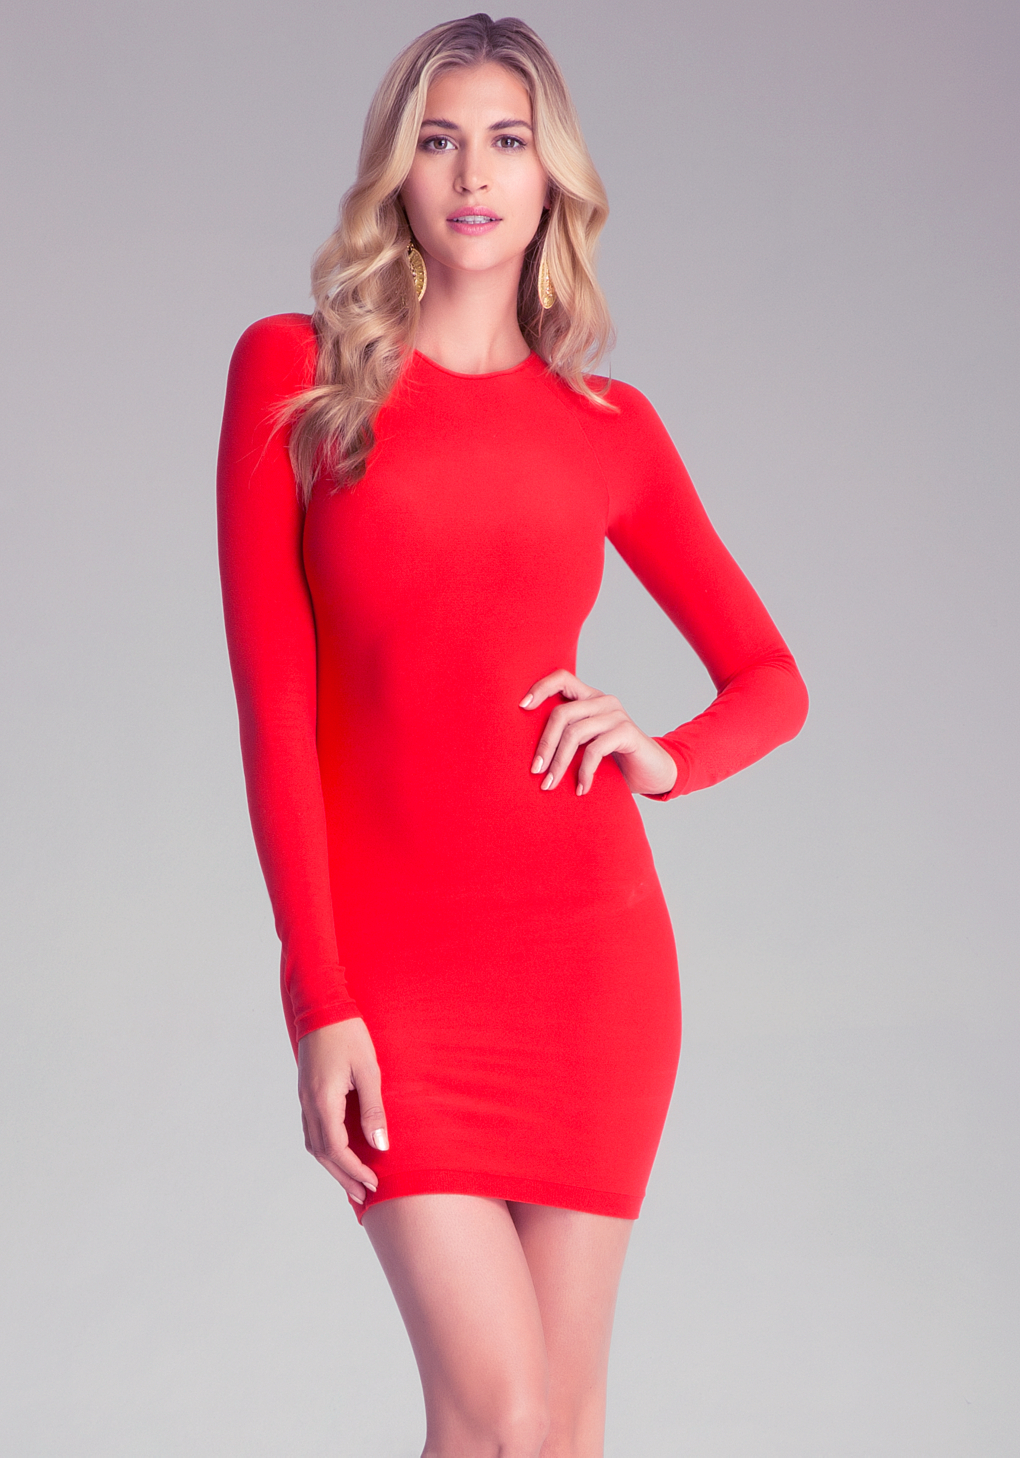 Bebe Raglan Sleeve Bodycon Dress in Red | Lyst